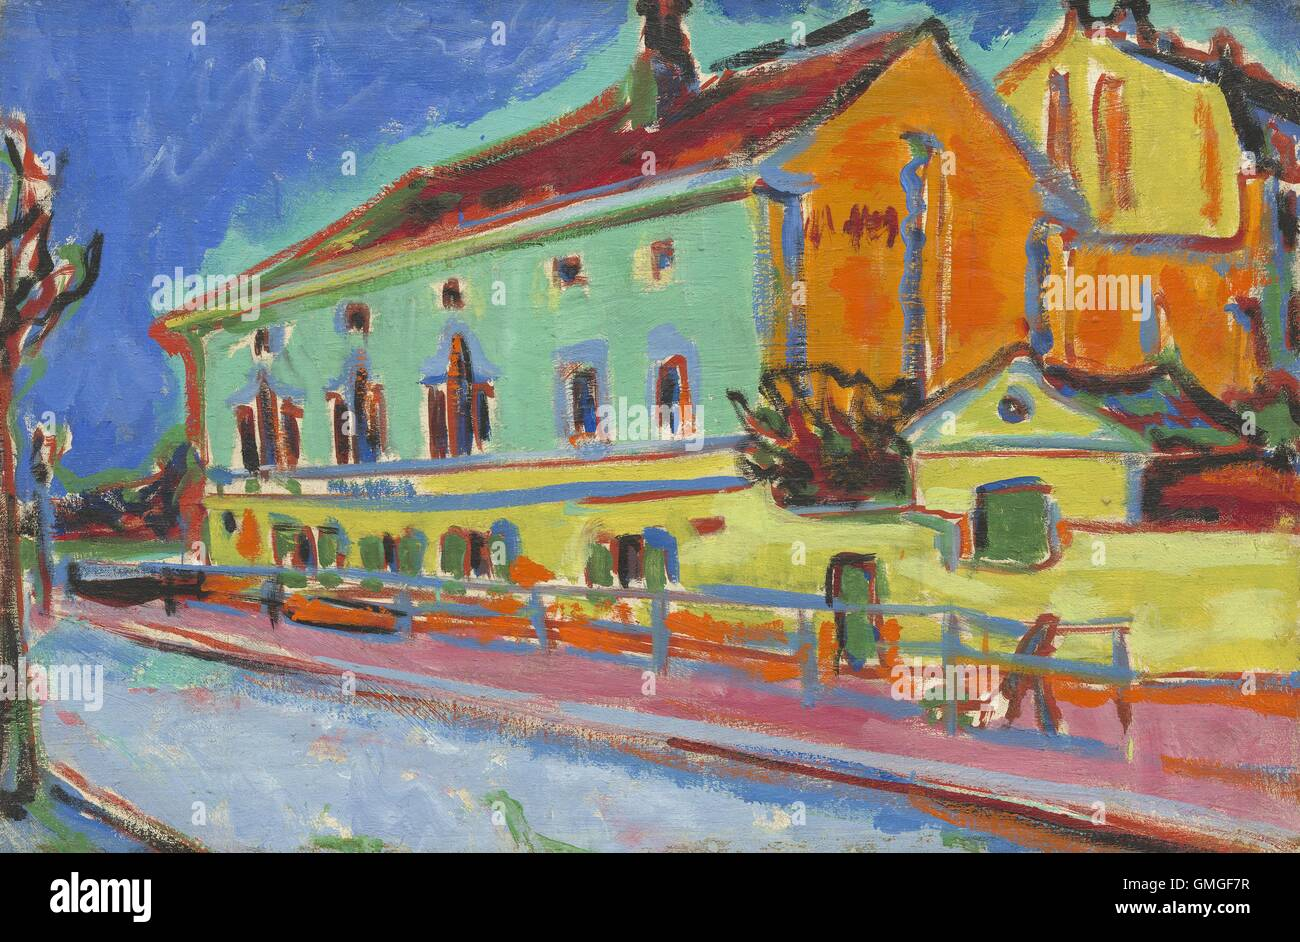 Ernst Ludwig Kirchner, by Houses in Dresden, 1909-10, German painting, oil on canvas. This work was painted while - Stock Image